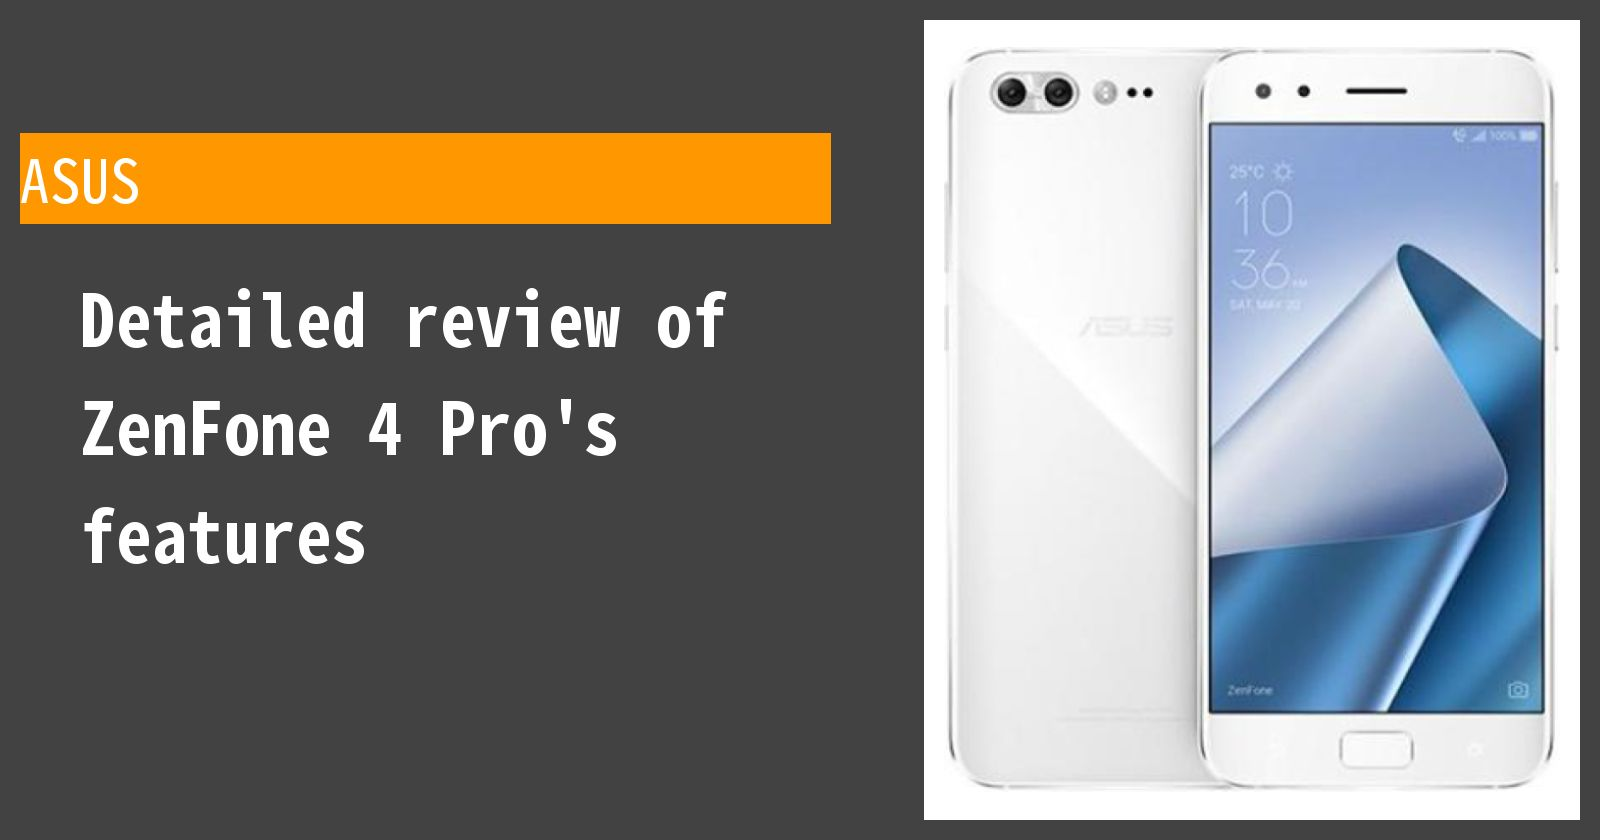 Detailed review of ZenFone 4 Pro's features